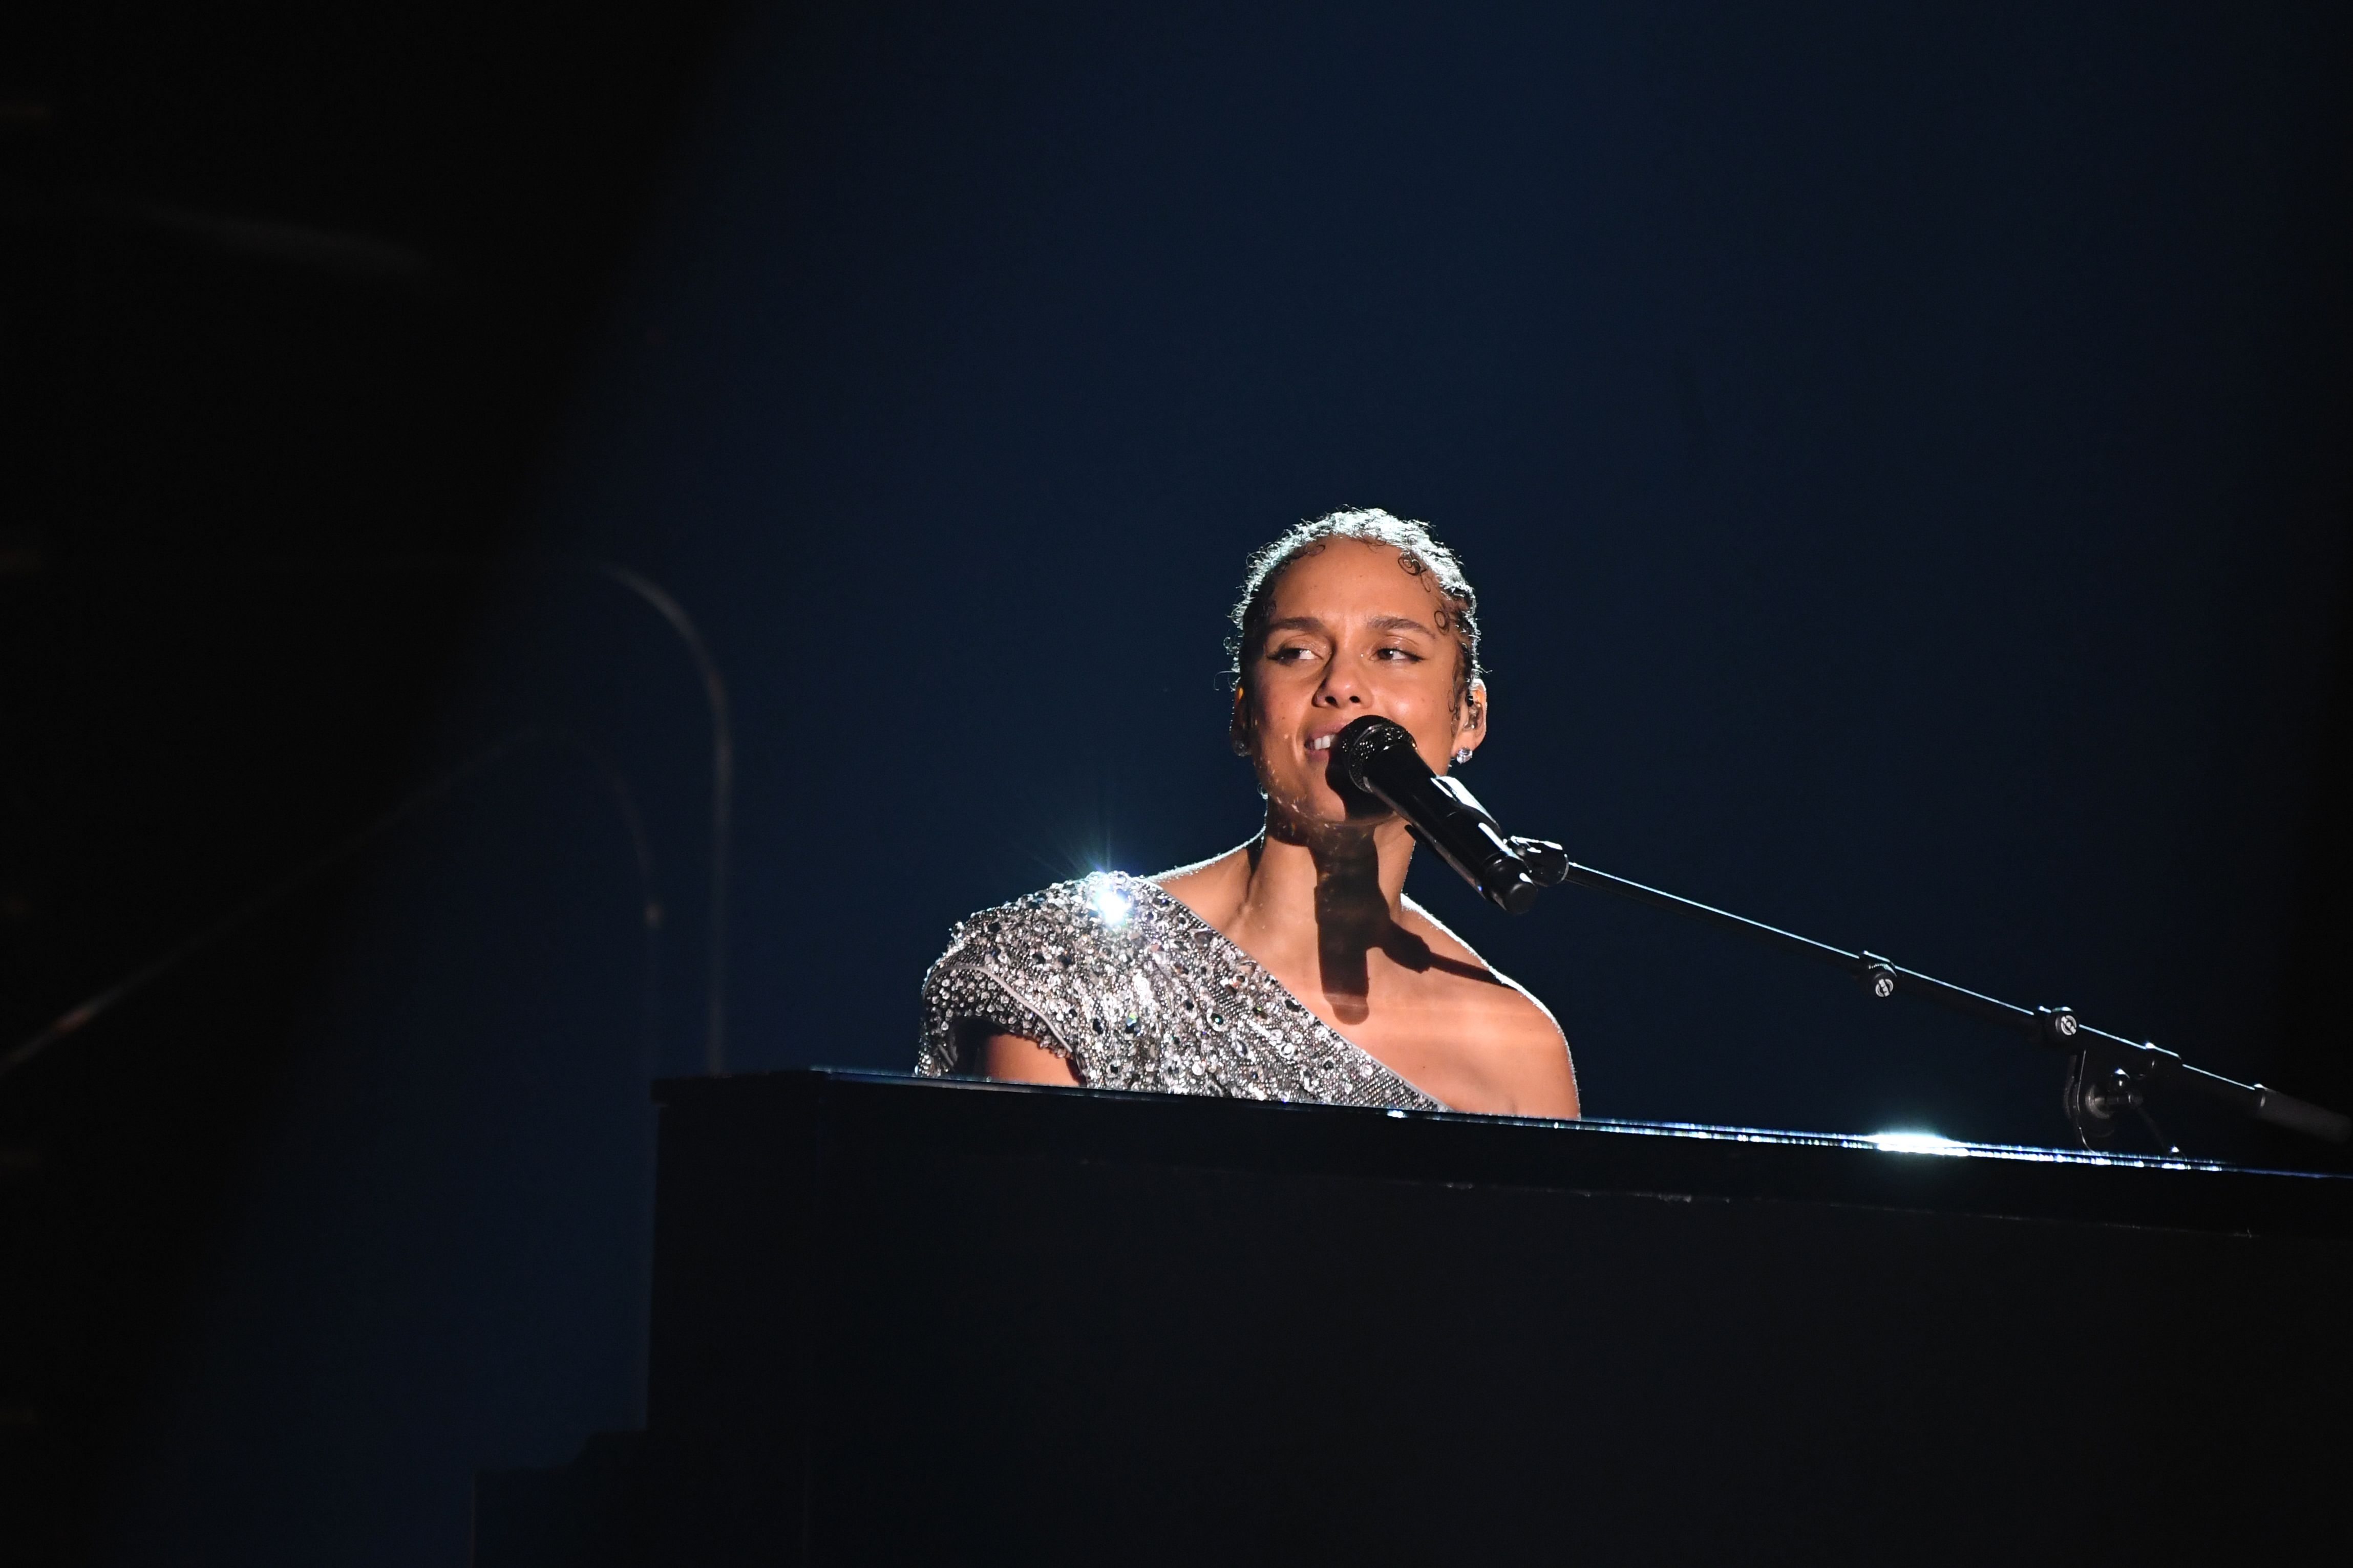 Coverage Of The 62nd Annual Grammy Awards Nobody else lyrics performed by alicia keys are property and copyright of the authors, artists and labels. coverage of the 62nd annual grammy awards